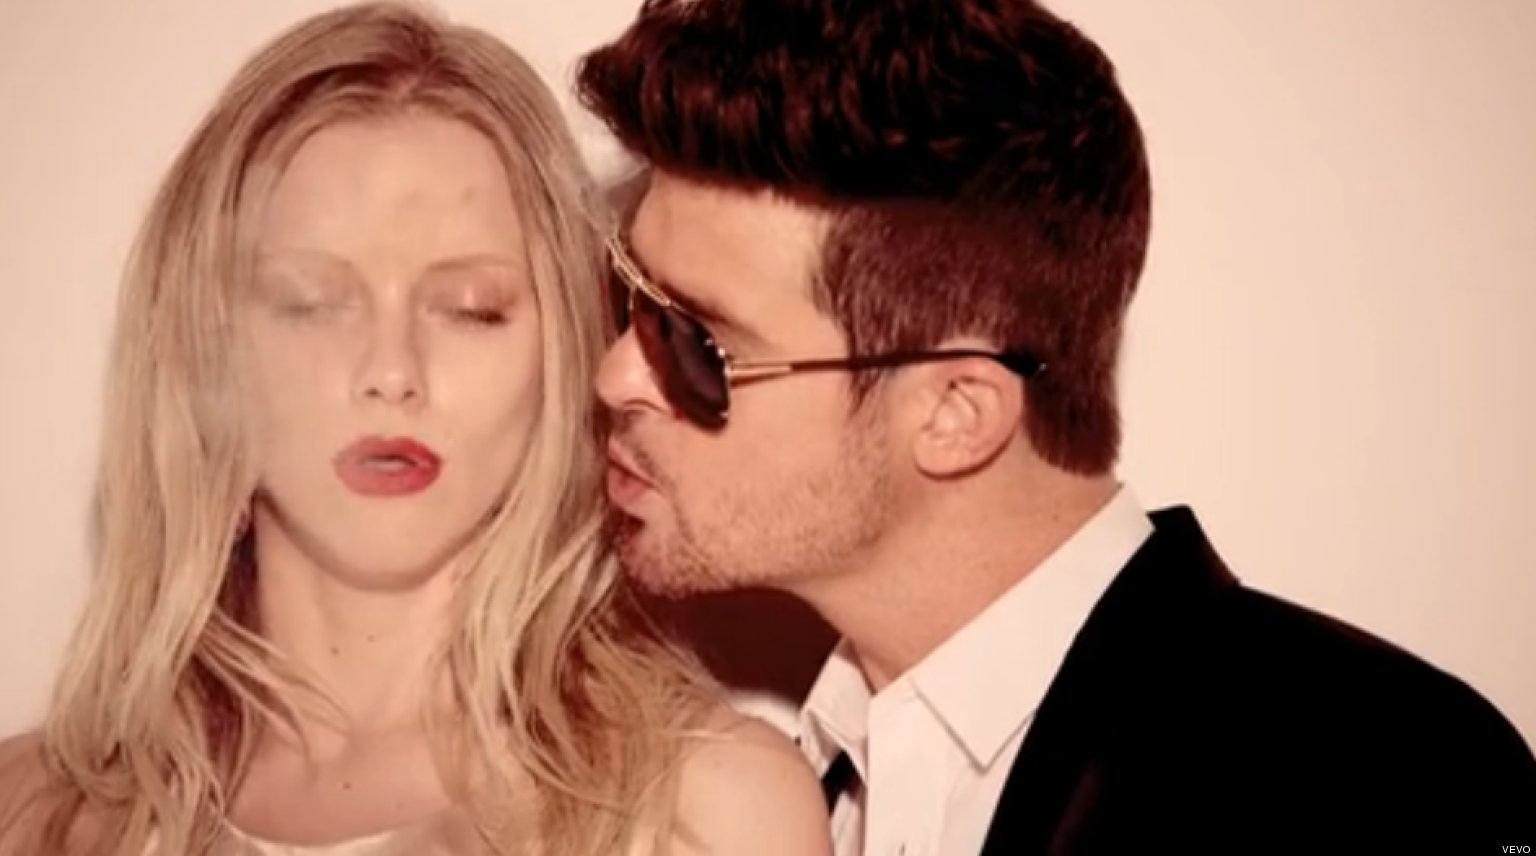 ROBIN-THICKE-BLURRED-LINES-facebook.jpg